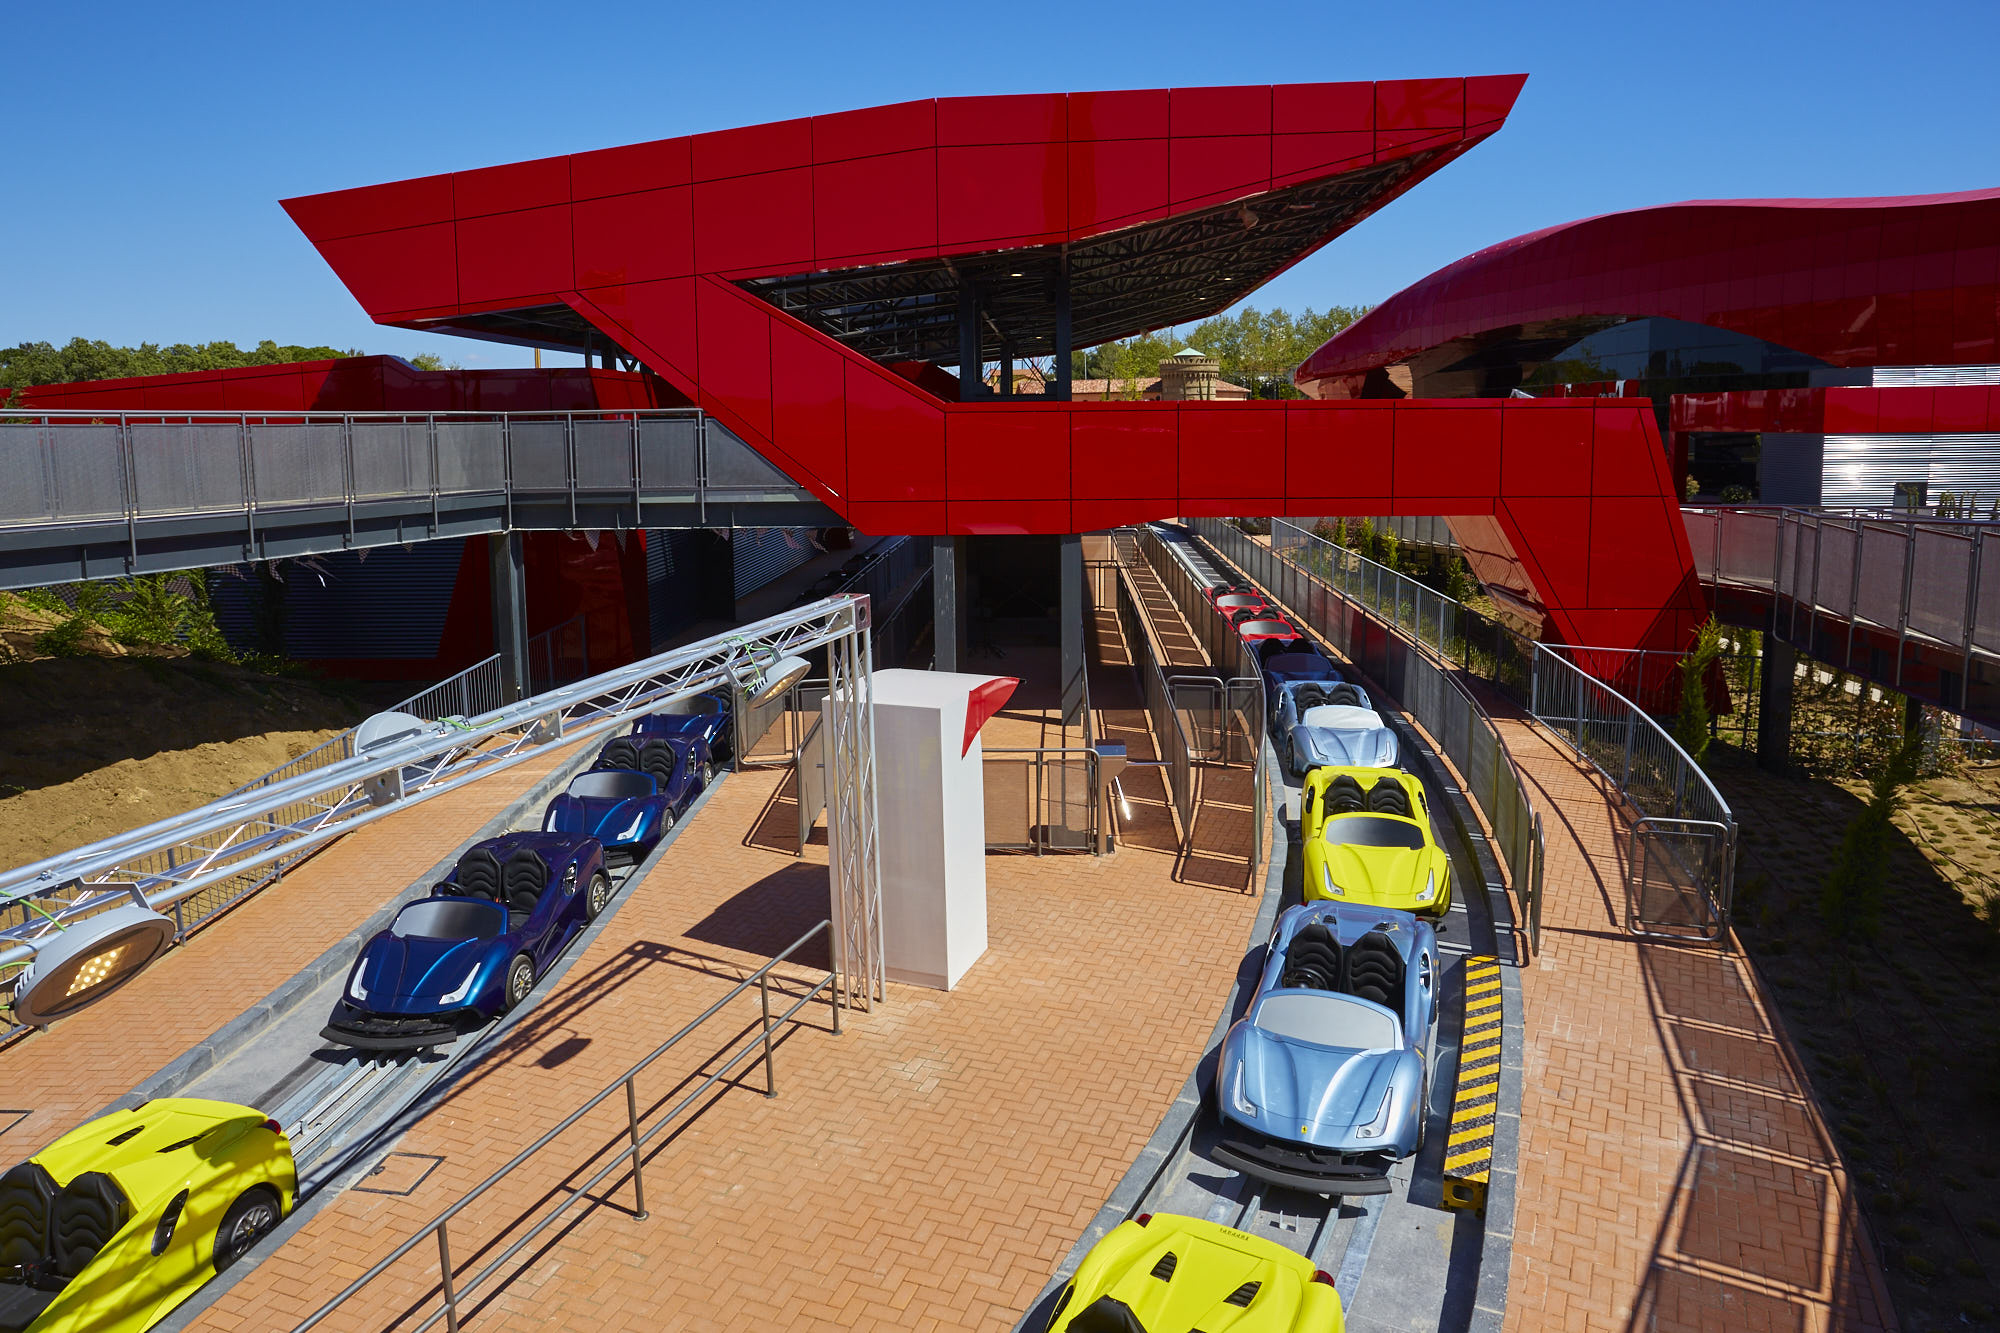 FERRARI LAND ATRACCIONES Y JUEGOS MARANELLO PRINCIPAL